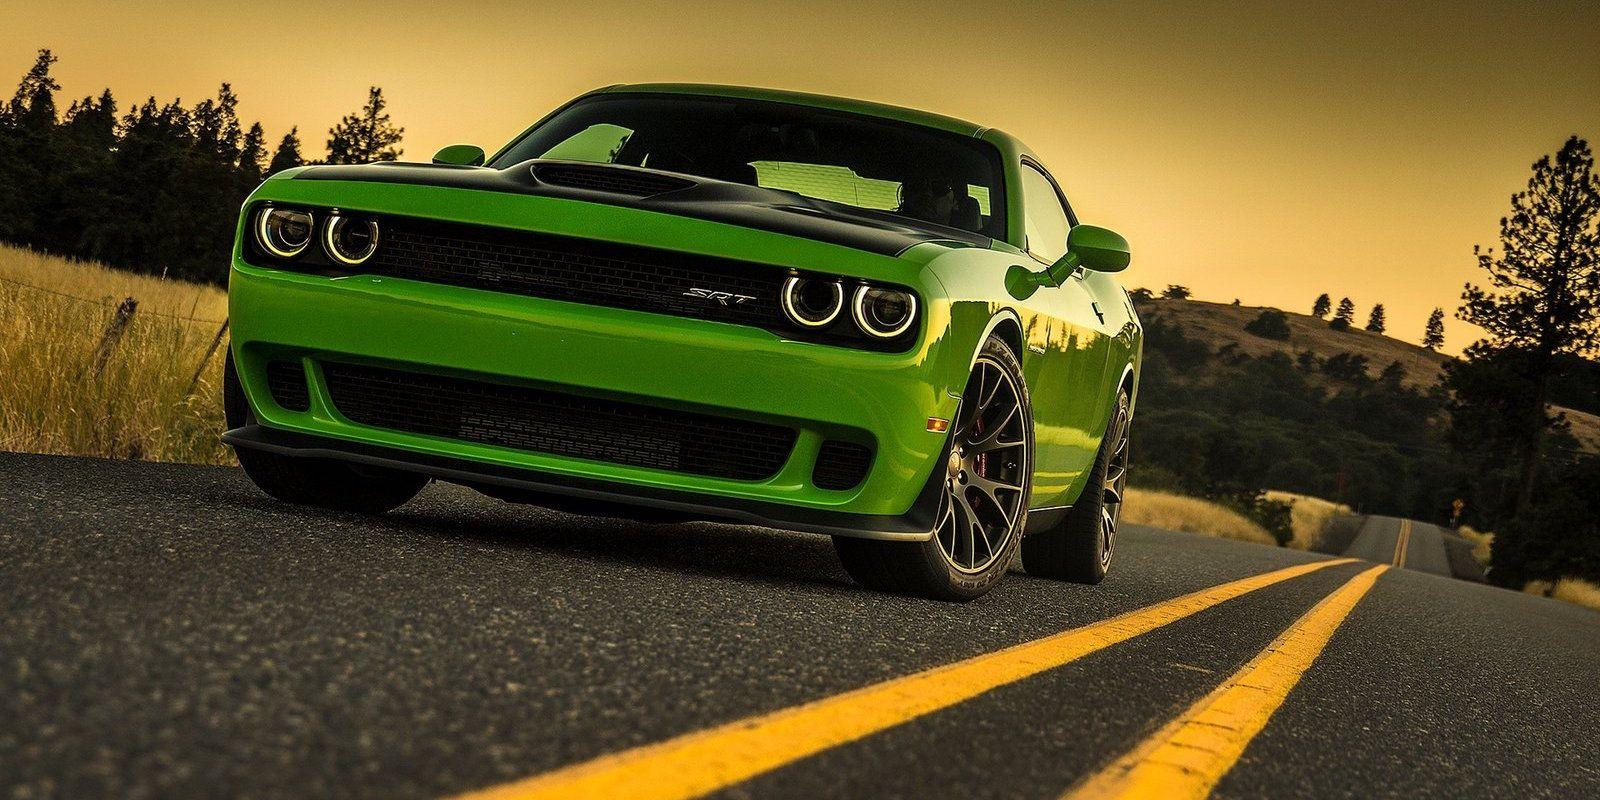 13 Cheapest Performance Cars For 2018 - 500 Horsepower Cars